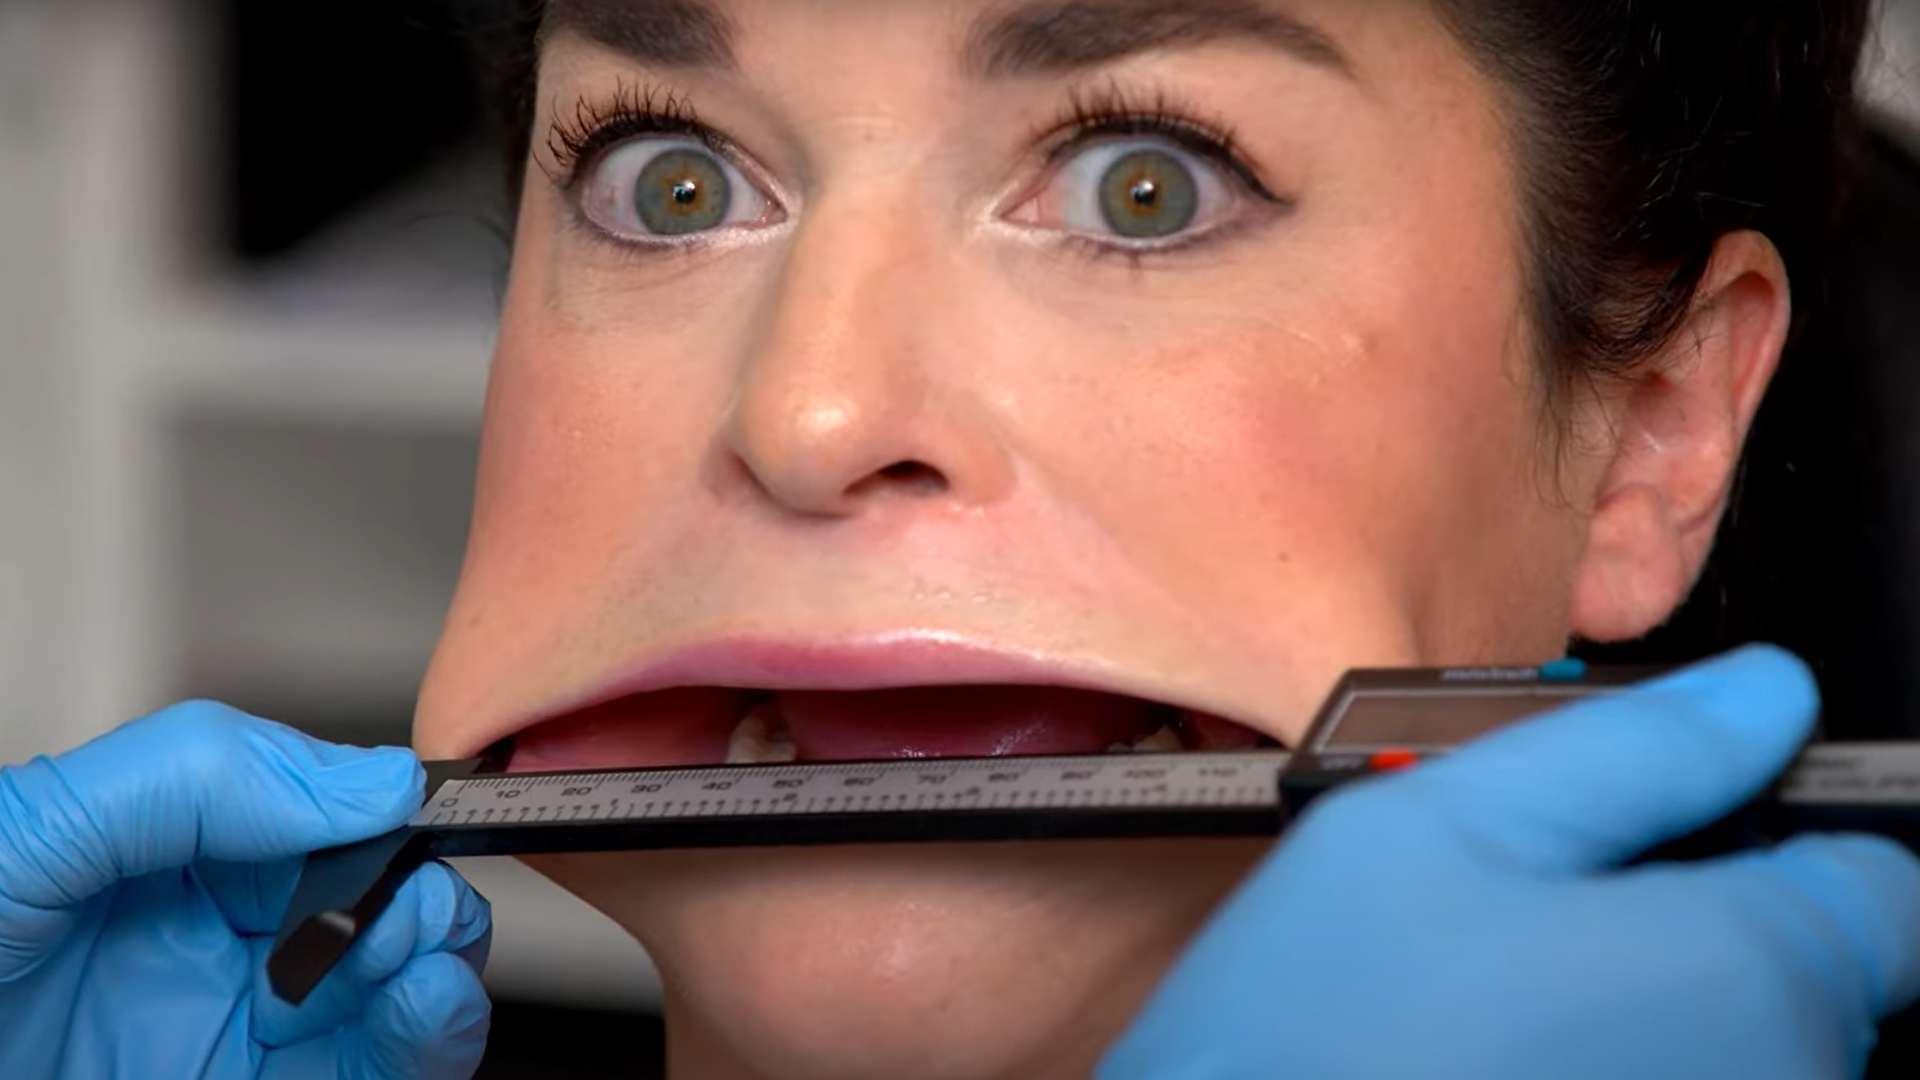 Samantha Ramsdell, the Guinness World Record holder for largest mouth in the world